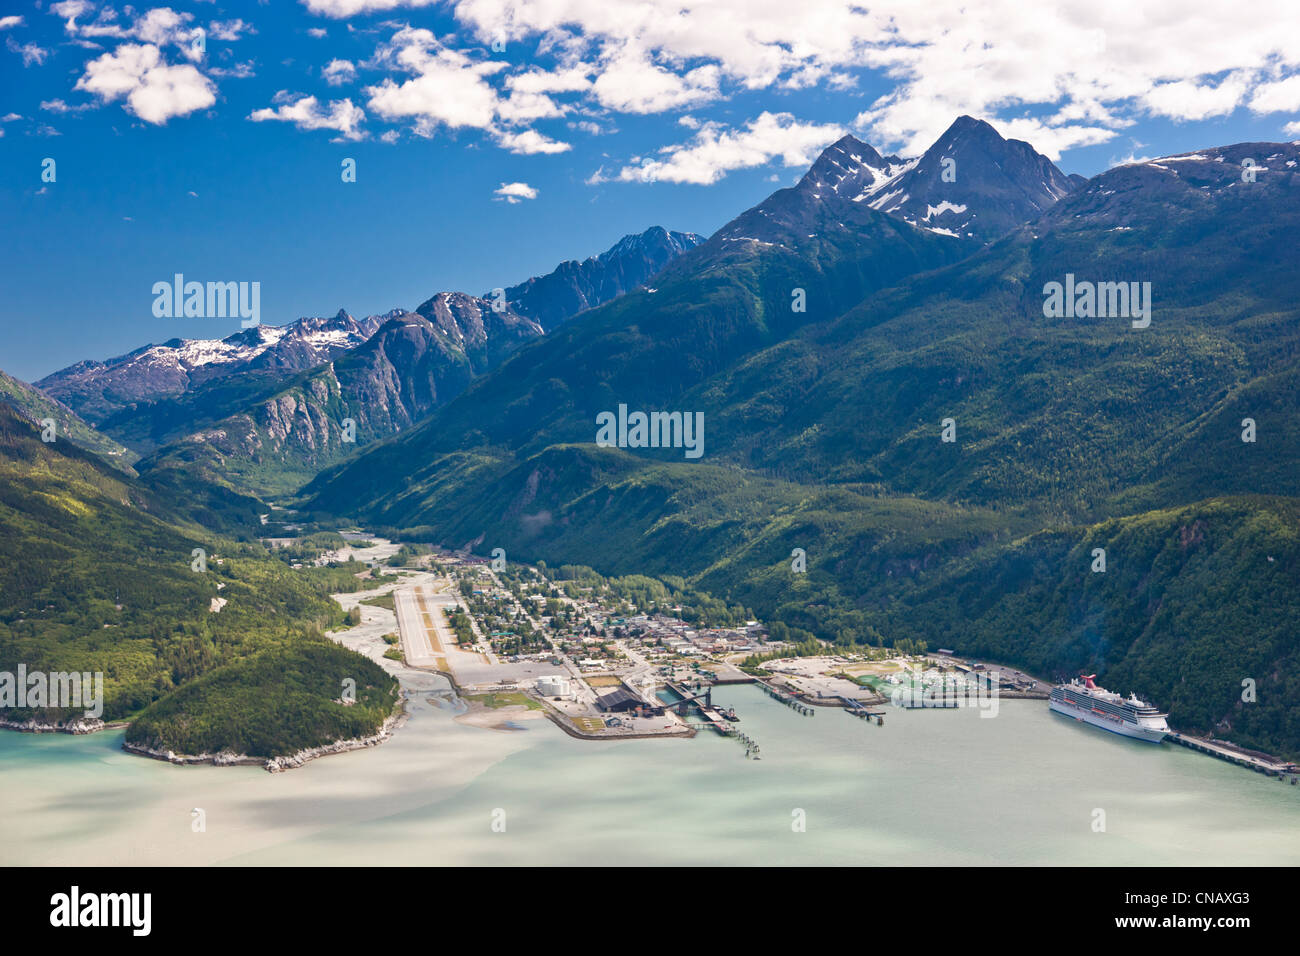 Aerial view of the city of Skagway with a cruise ship docked at port, Southeast Alaska, Summer - Stock Image